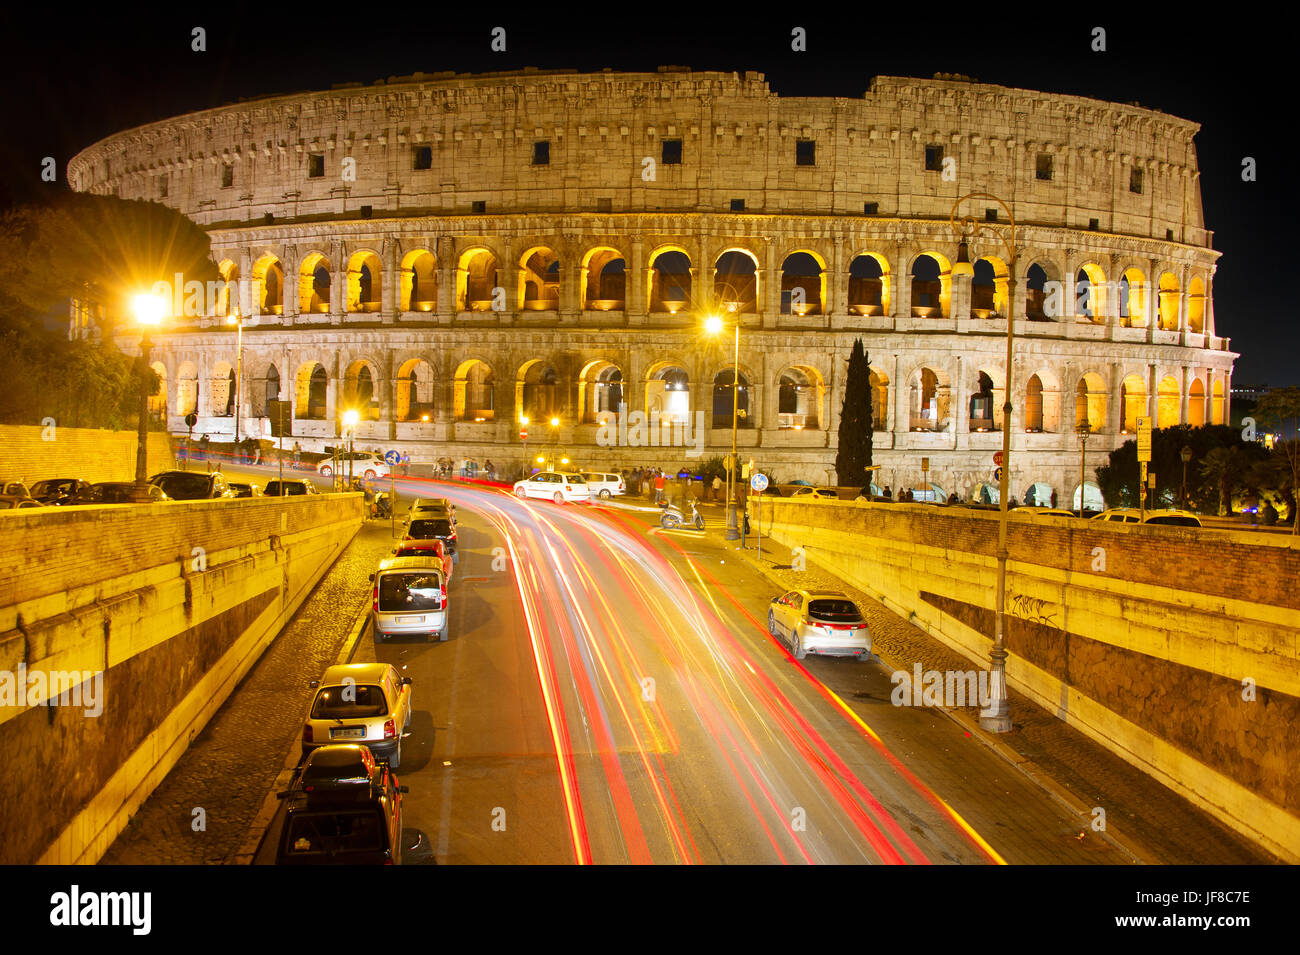 Night view of Colosseum, Rome - Stock Image